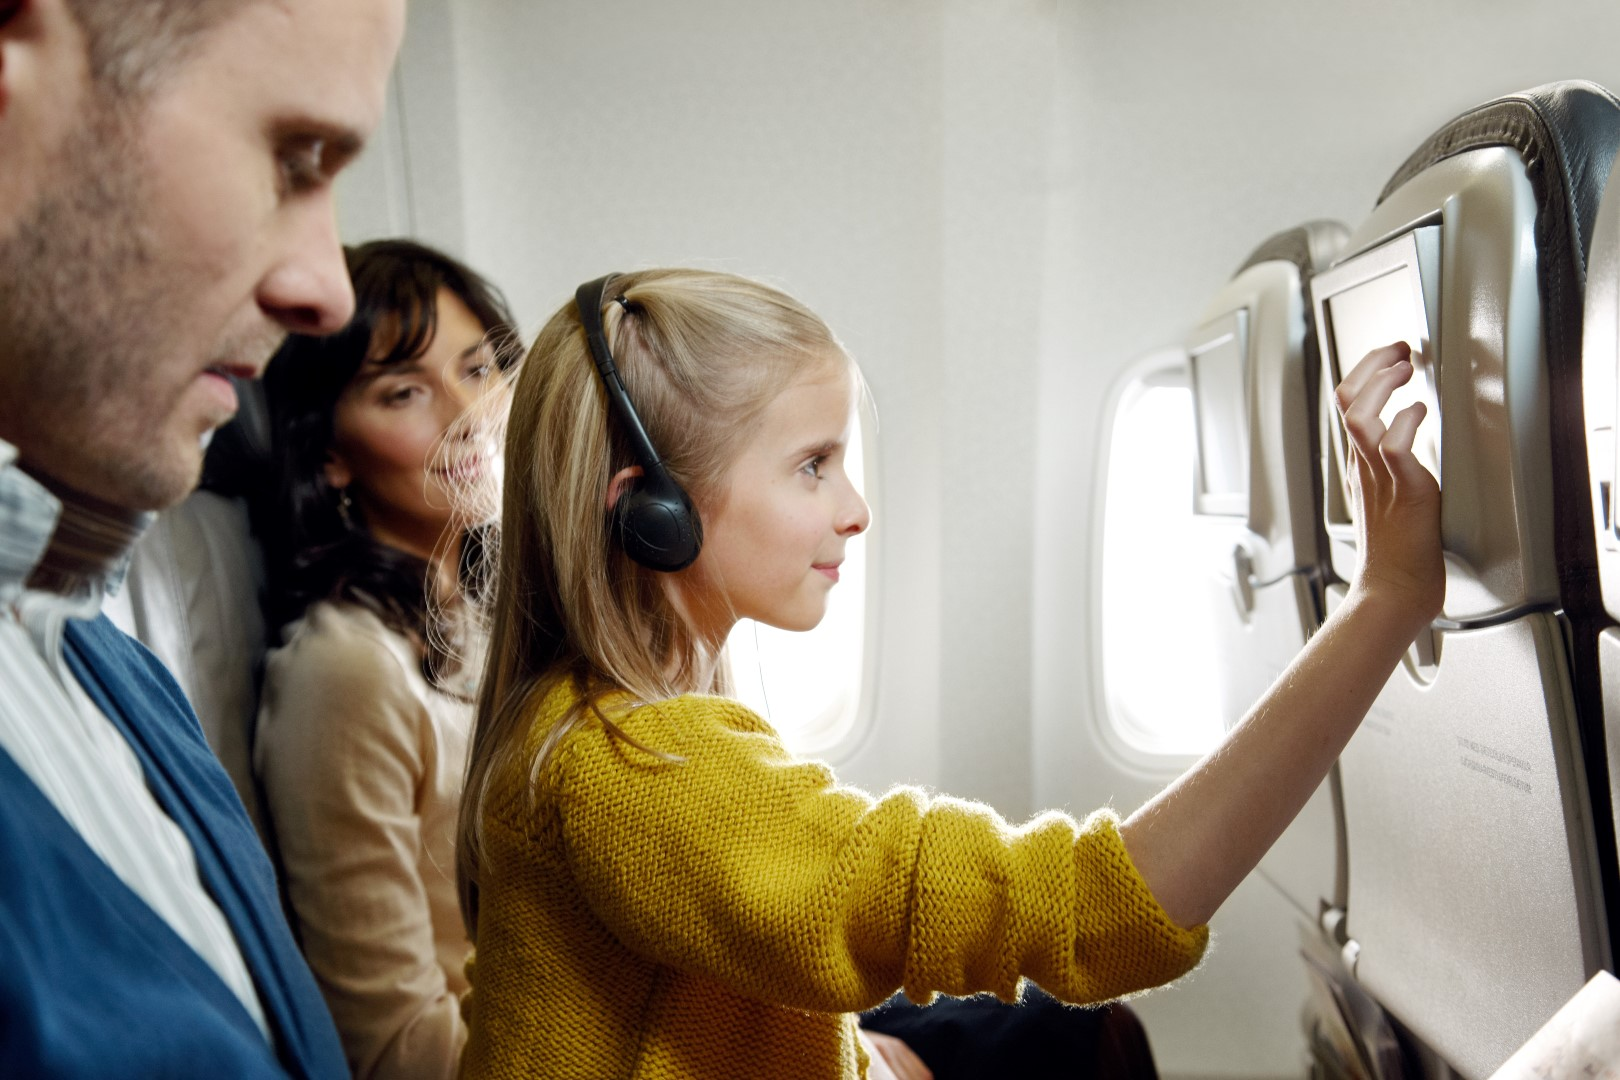 Icelandair provides inflight connectivity to passengers via